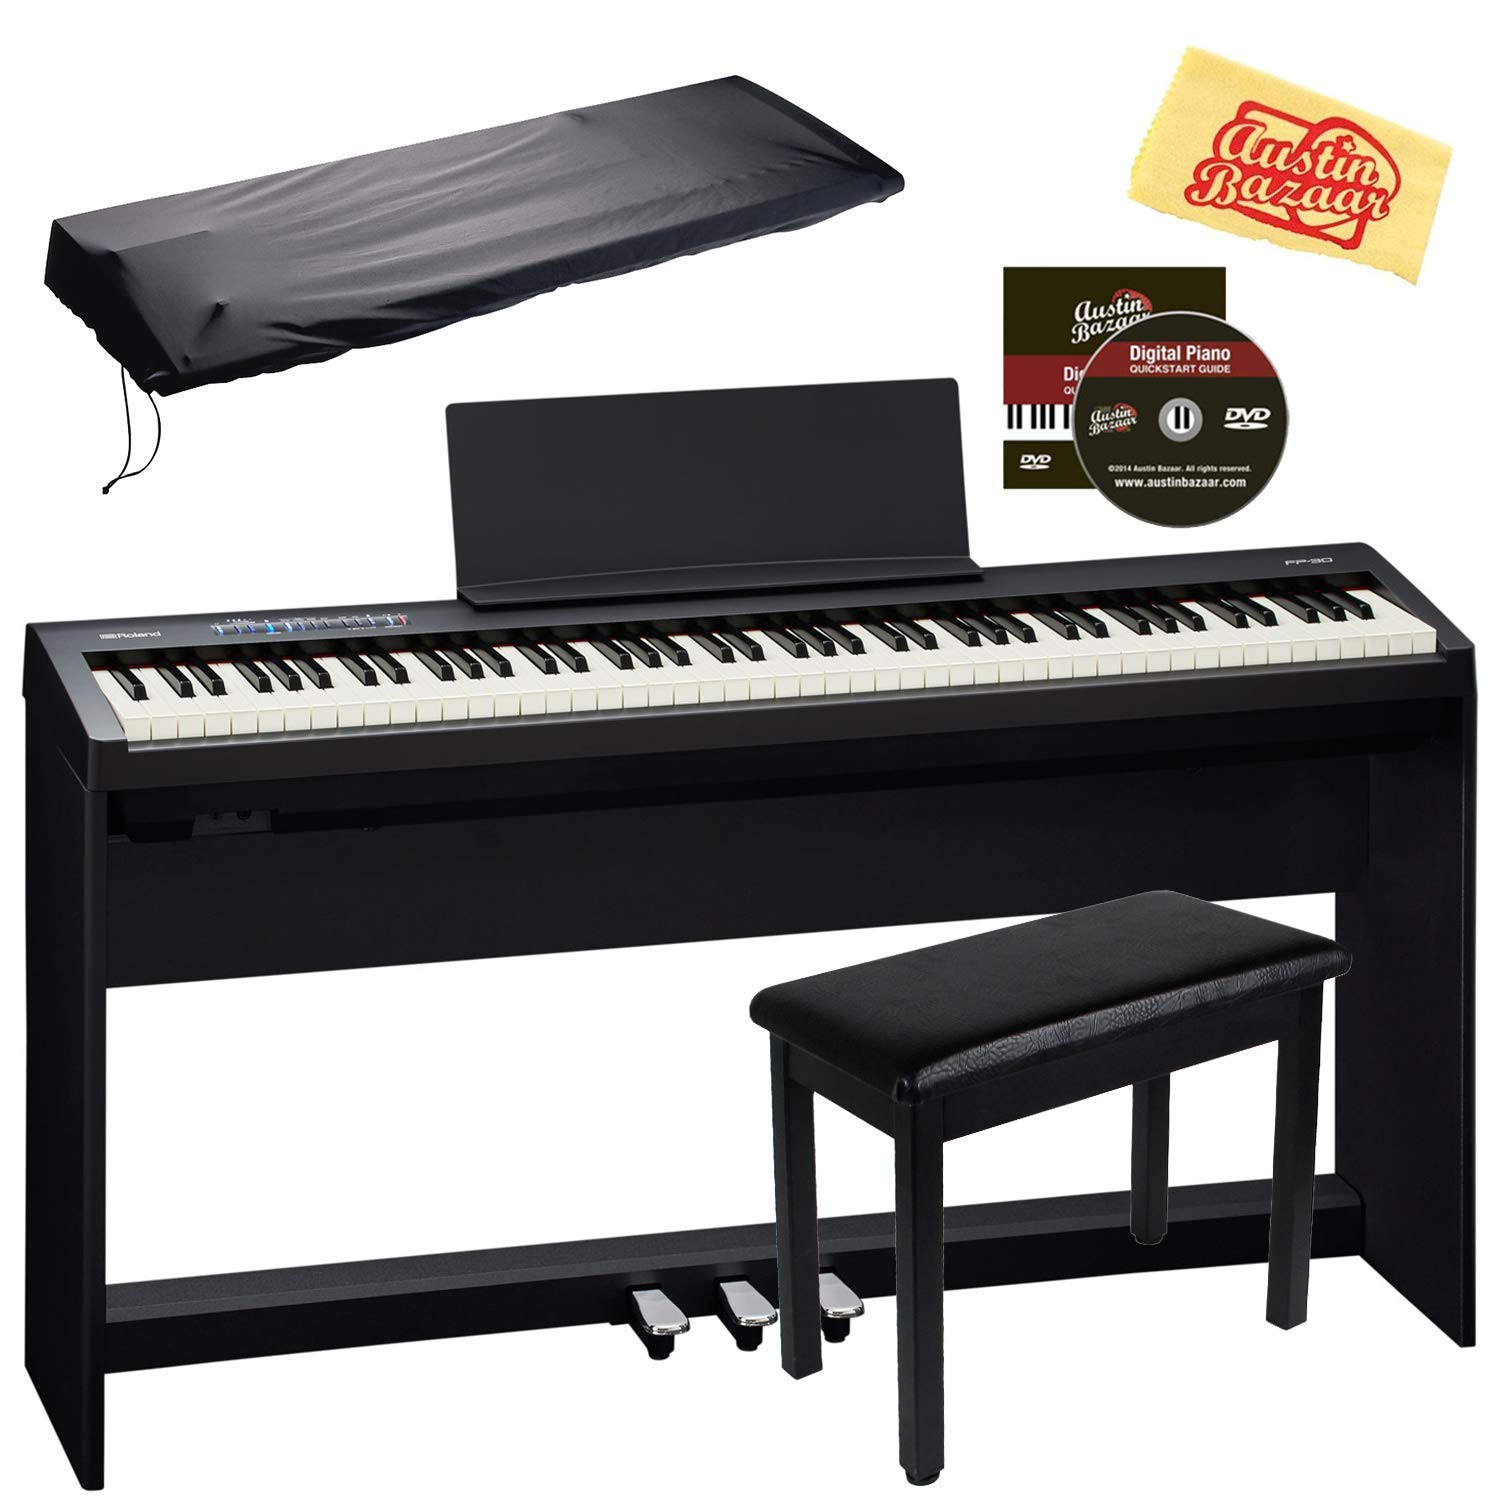 Roland FP-30 Digital Piano Review 2020